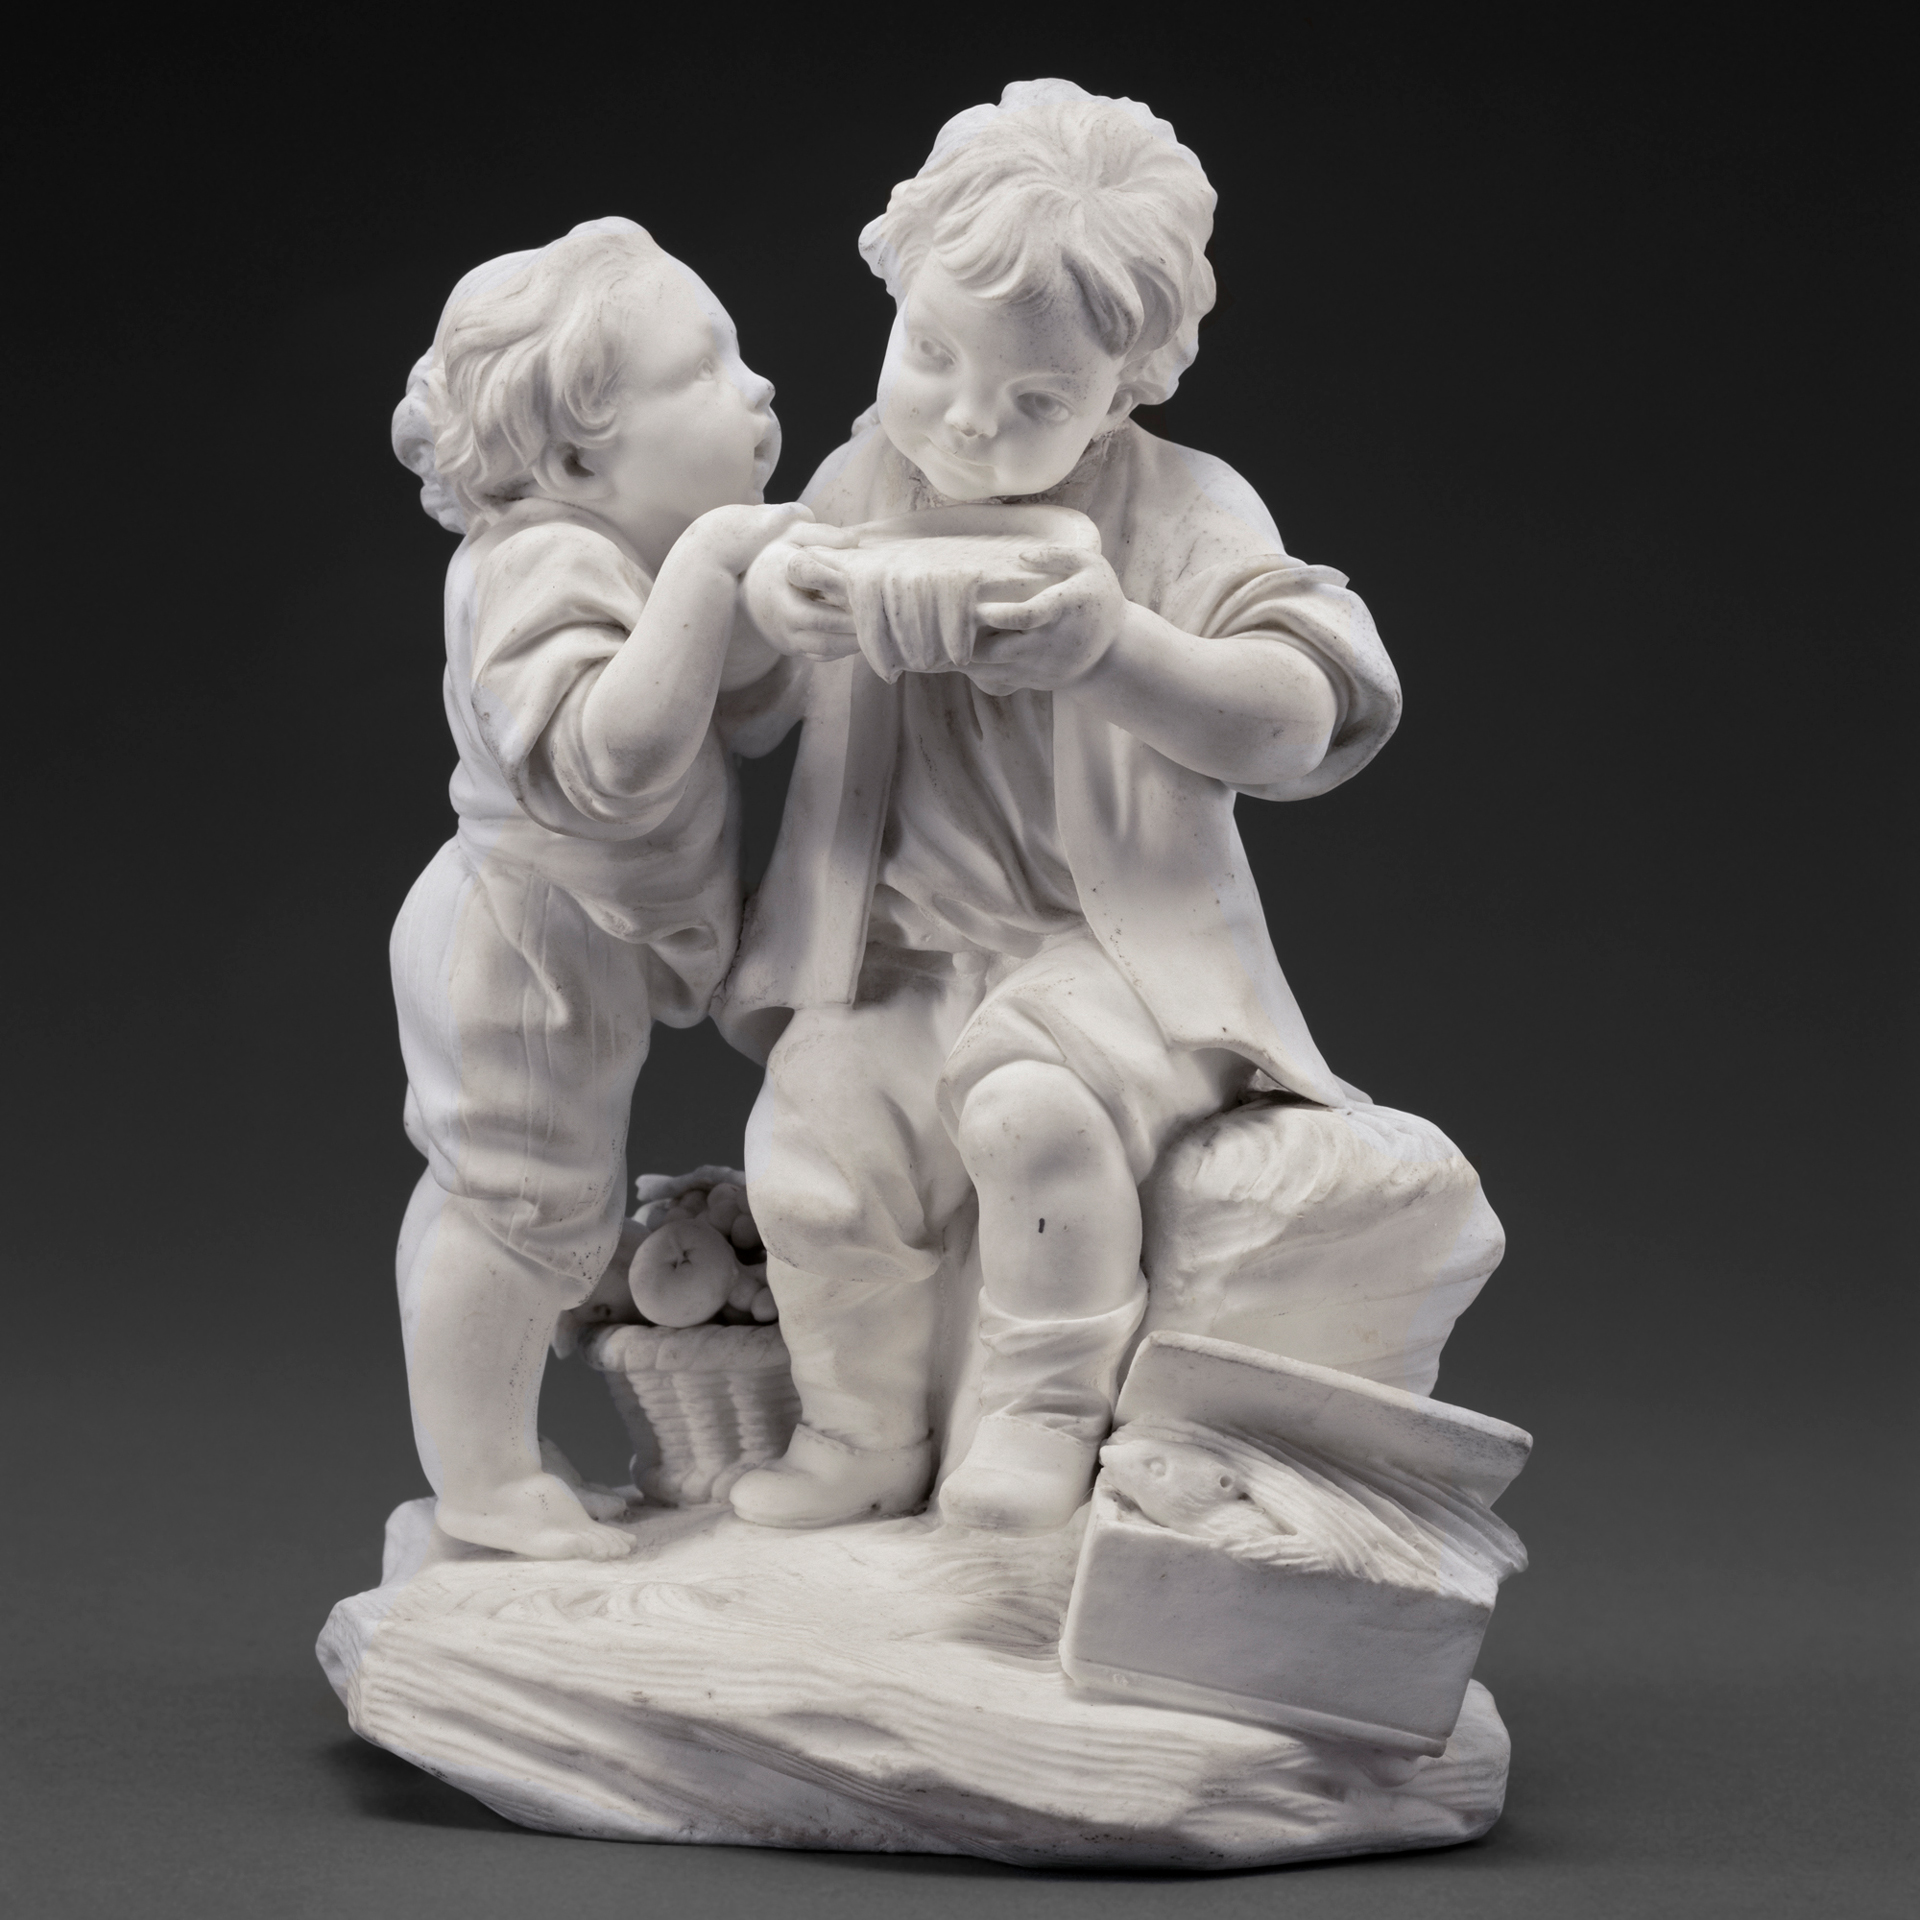 Object of the Week: Children Drinking Milk